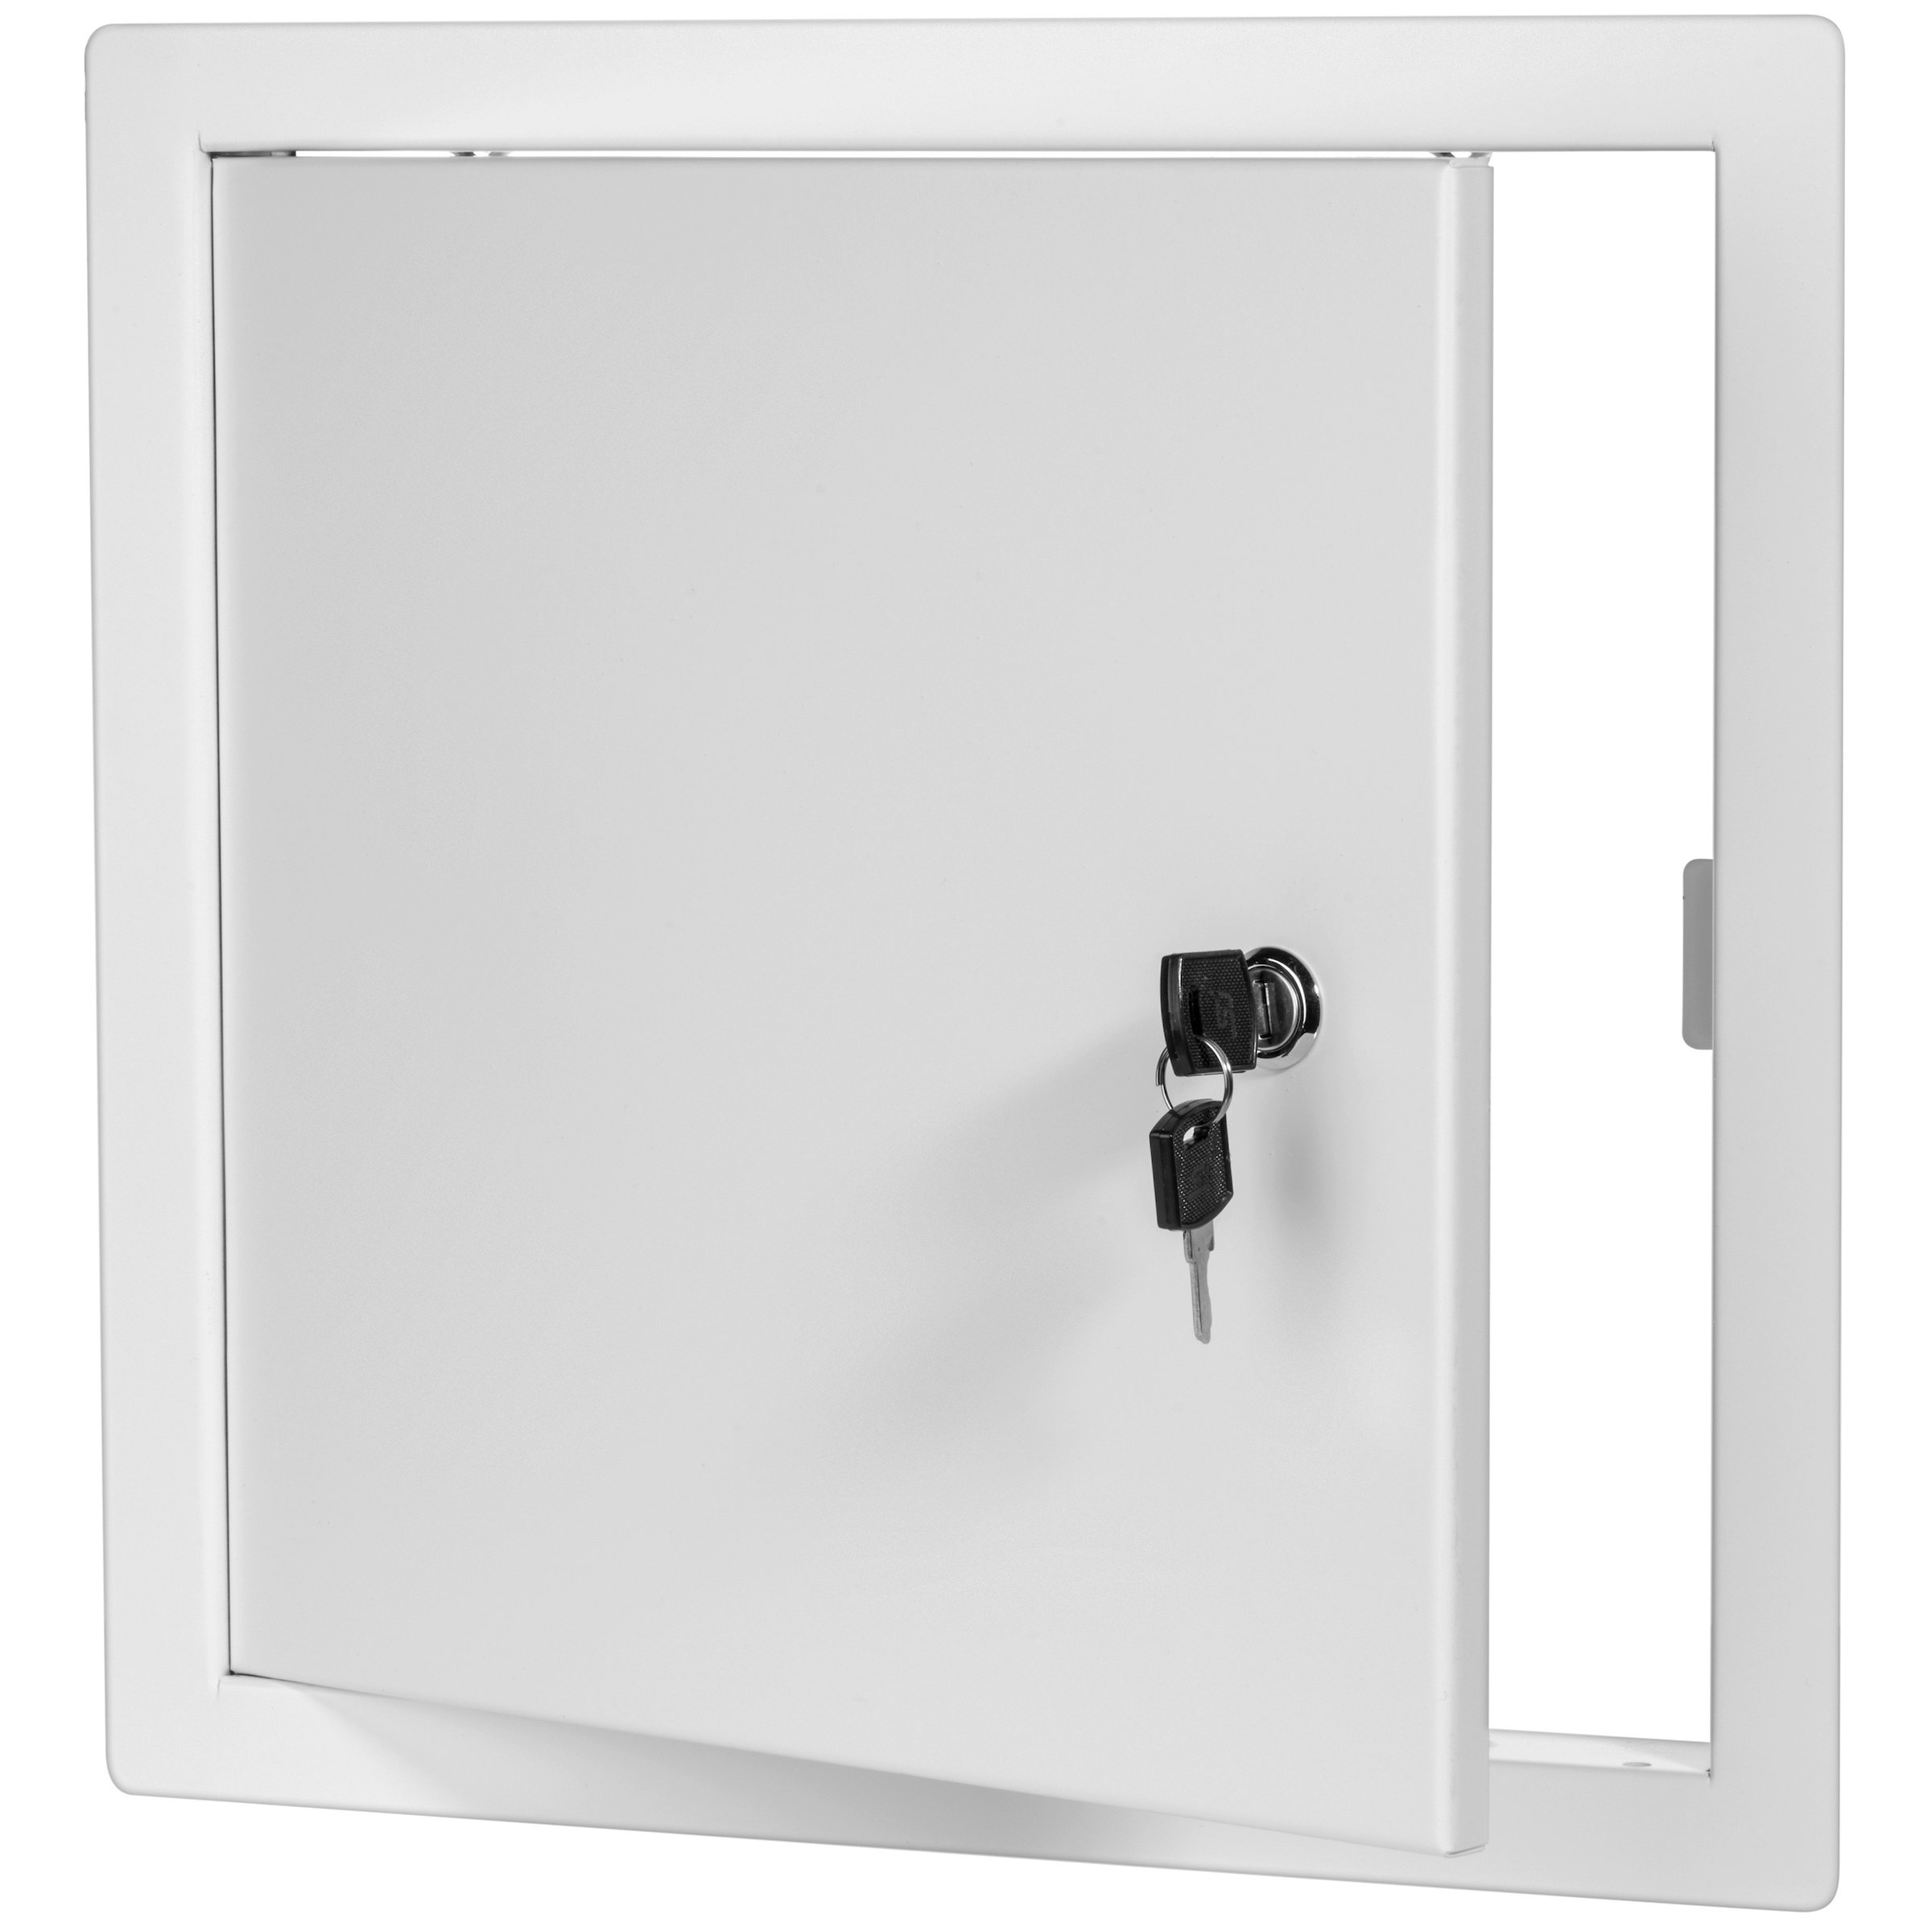 Premier 2002 Series Steel Access Door, 18 x 18 Flush Universal Mount, White (Keyed Cylinder Latch) by Premier Access Doors (Image #1)